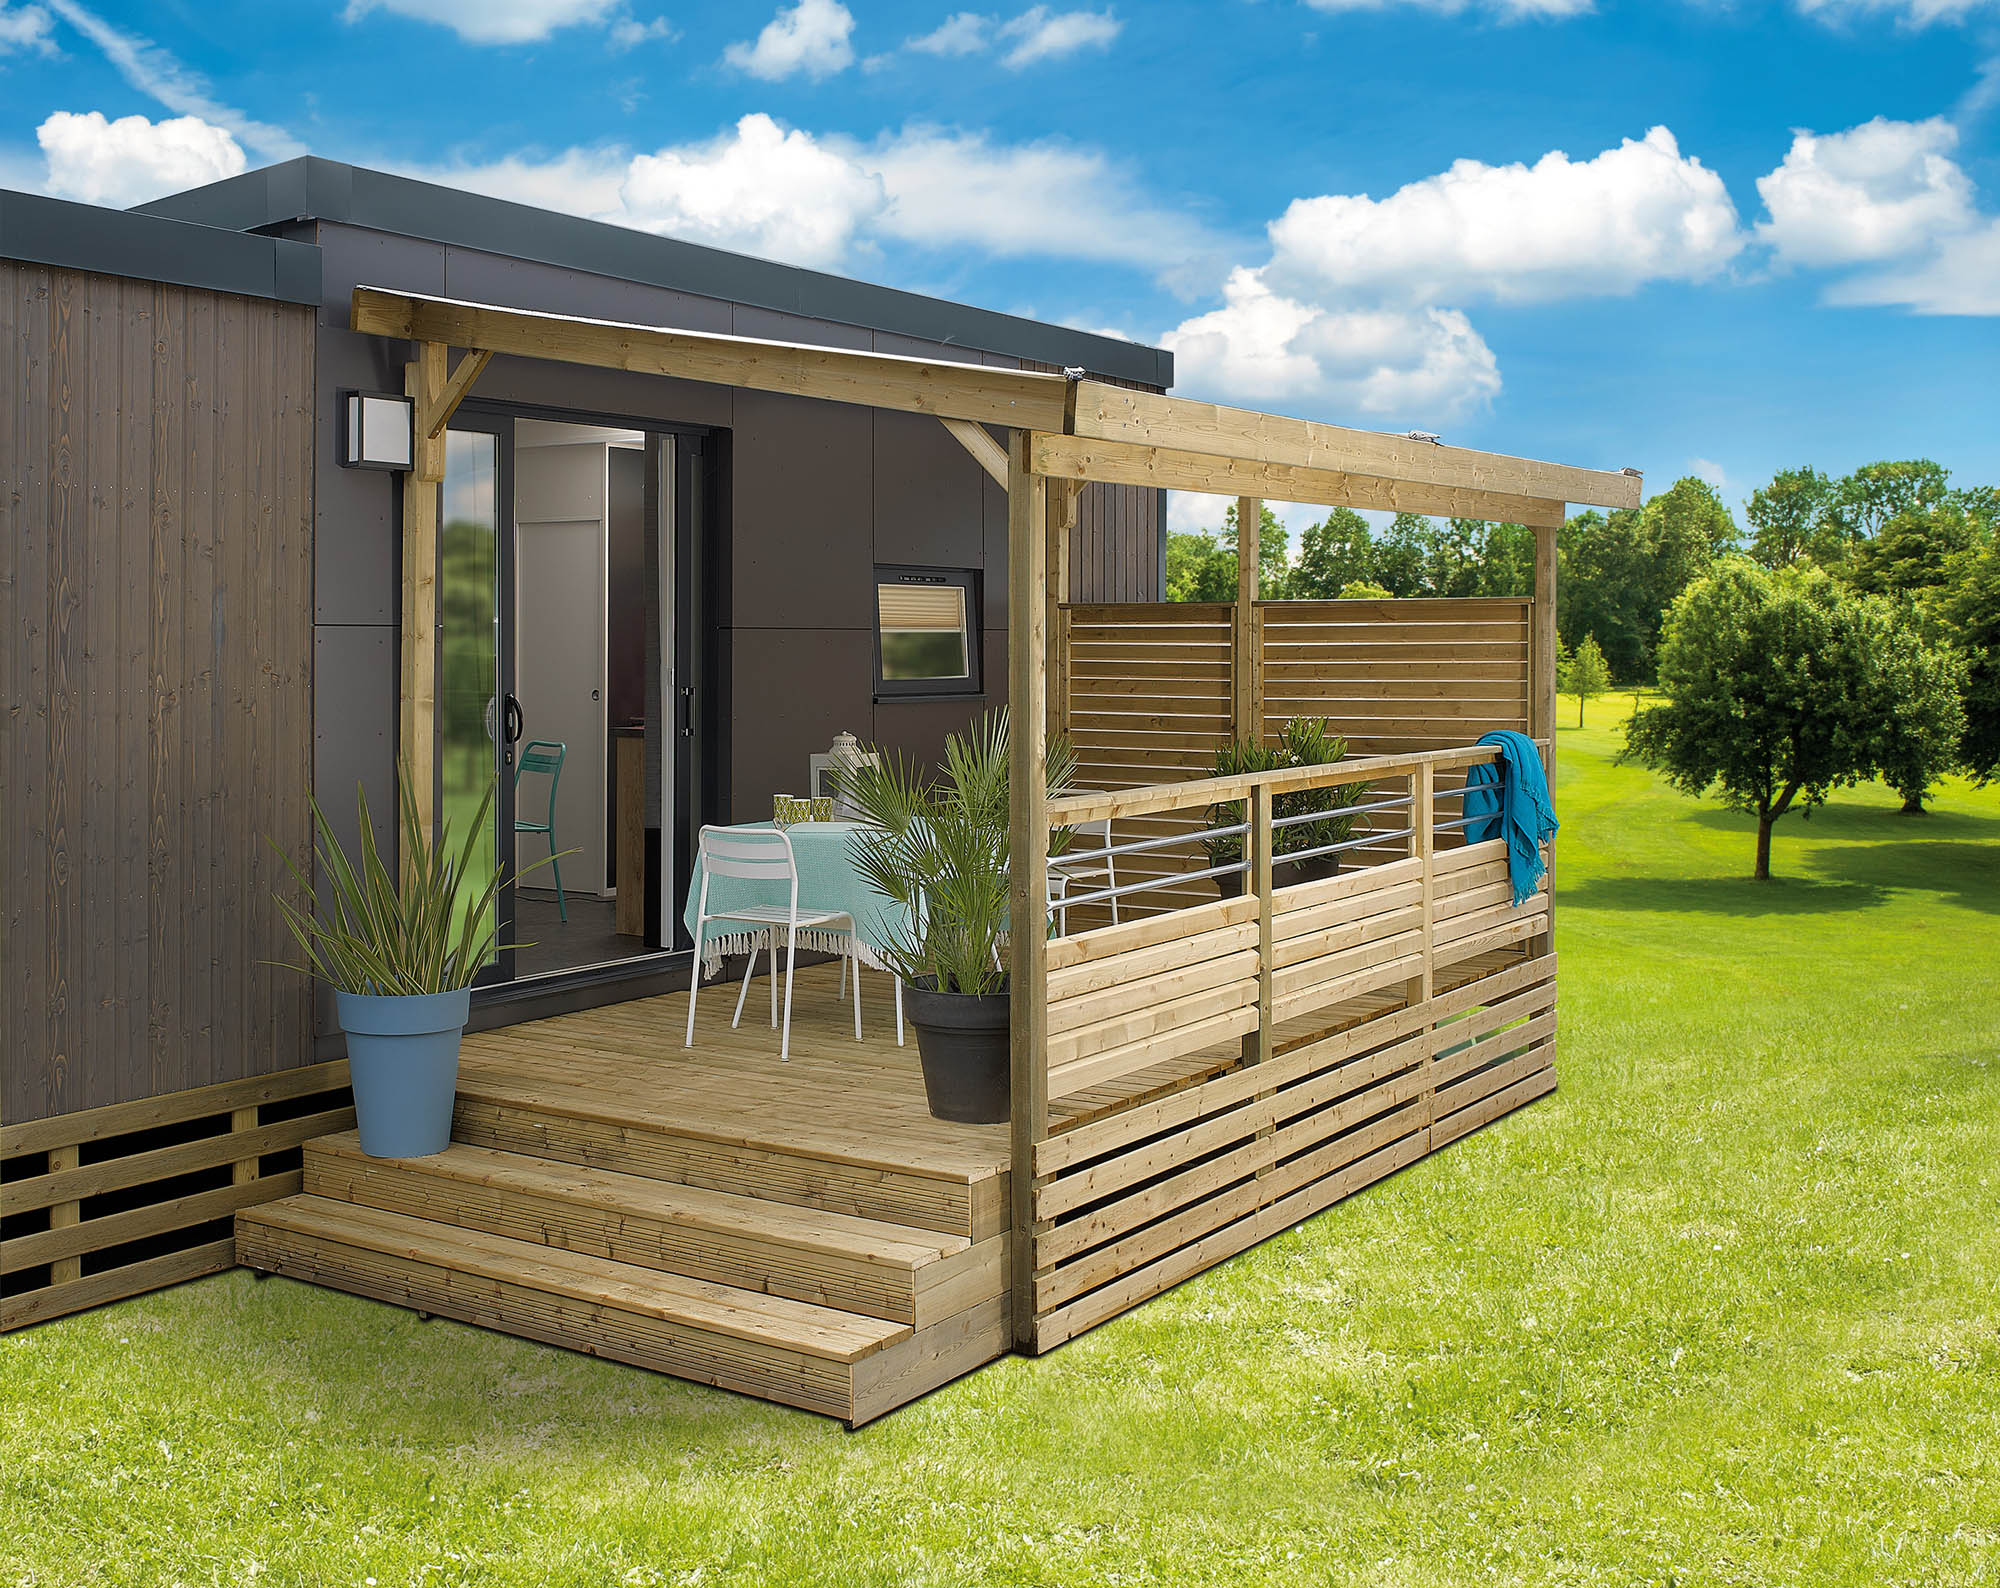 Terrasse Bois Mobil Home Terrasse En Bois Couverte Pour Mobile Home All Inclusive